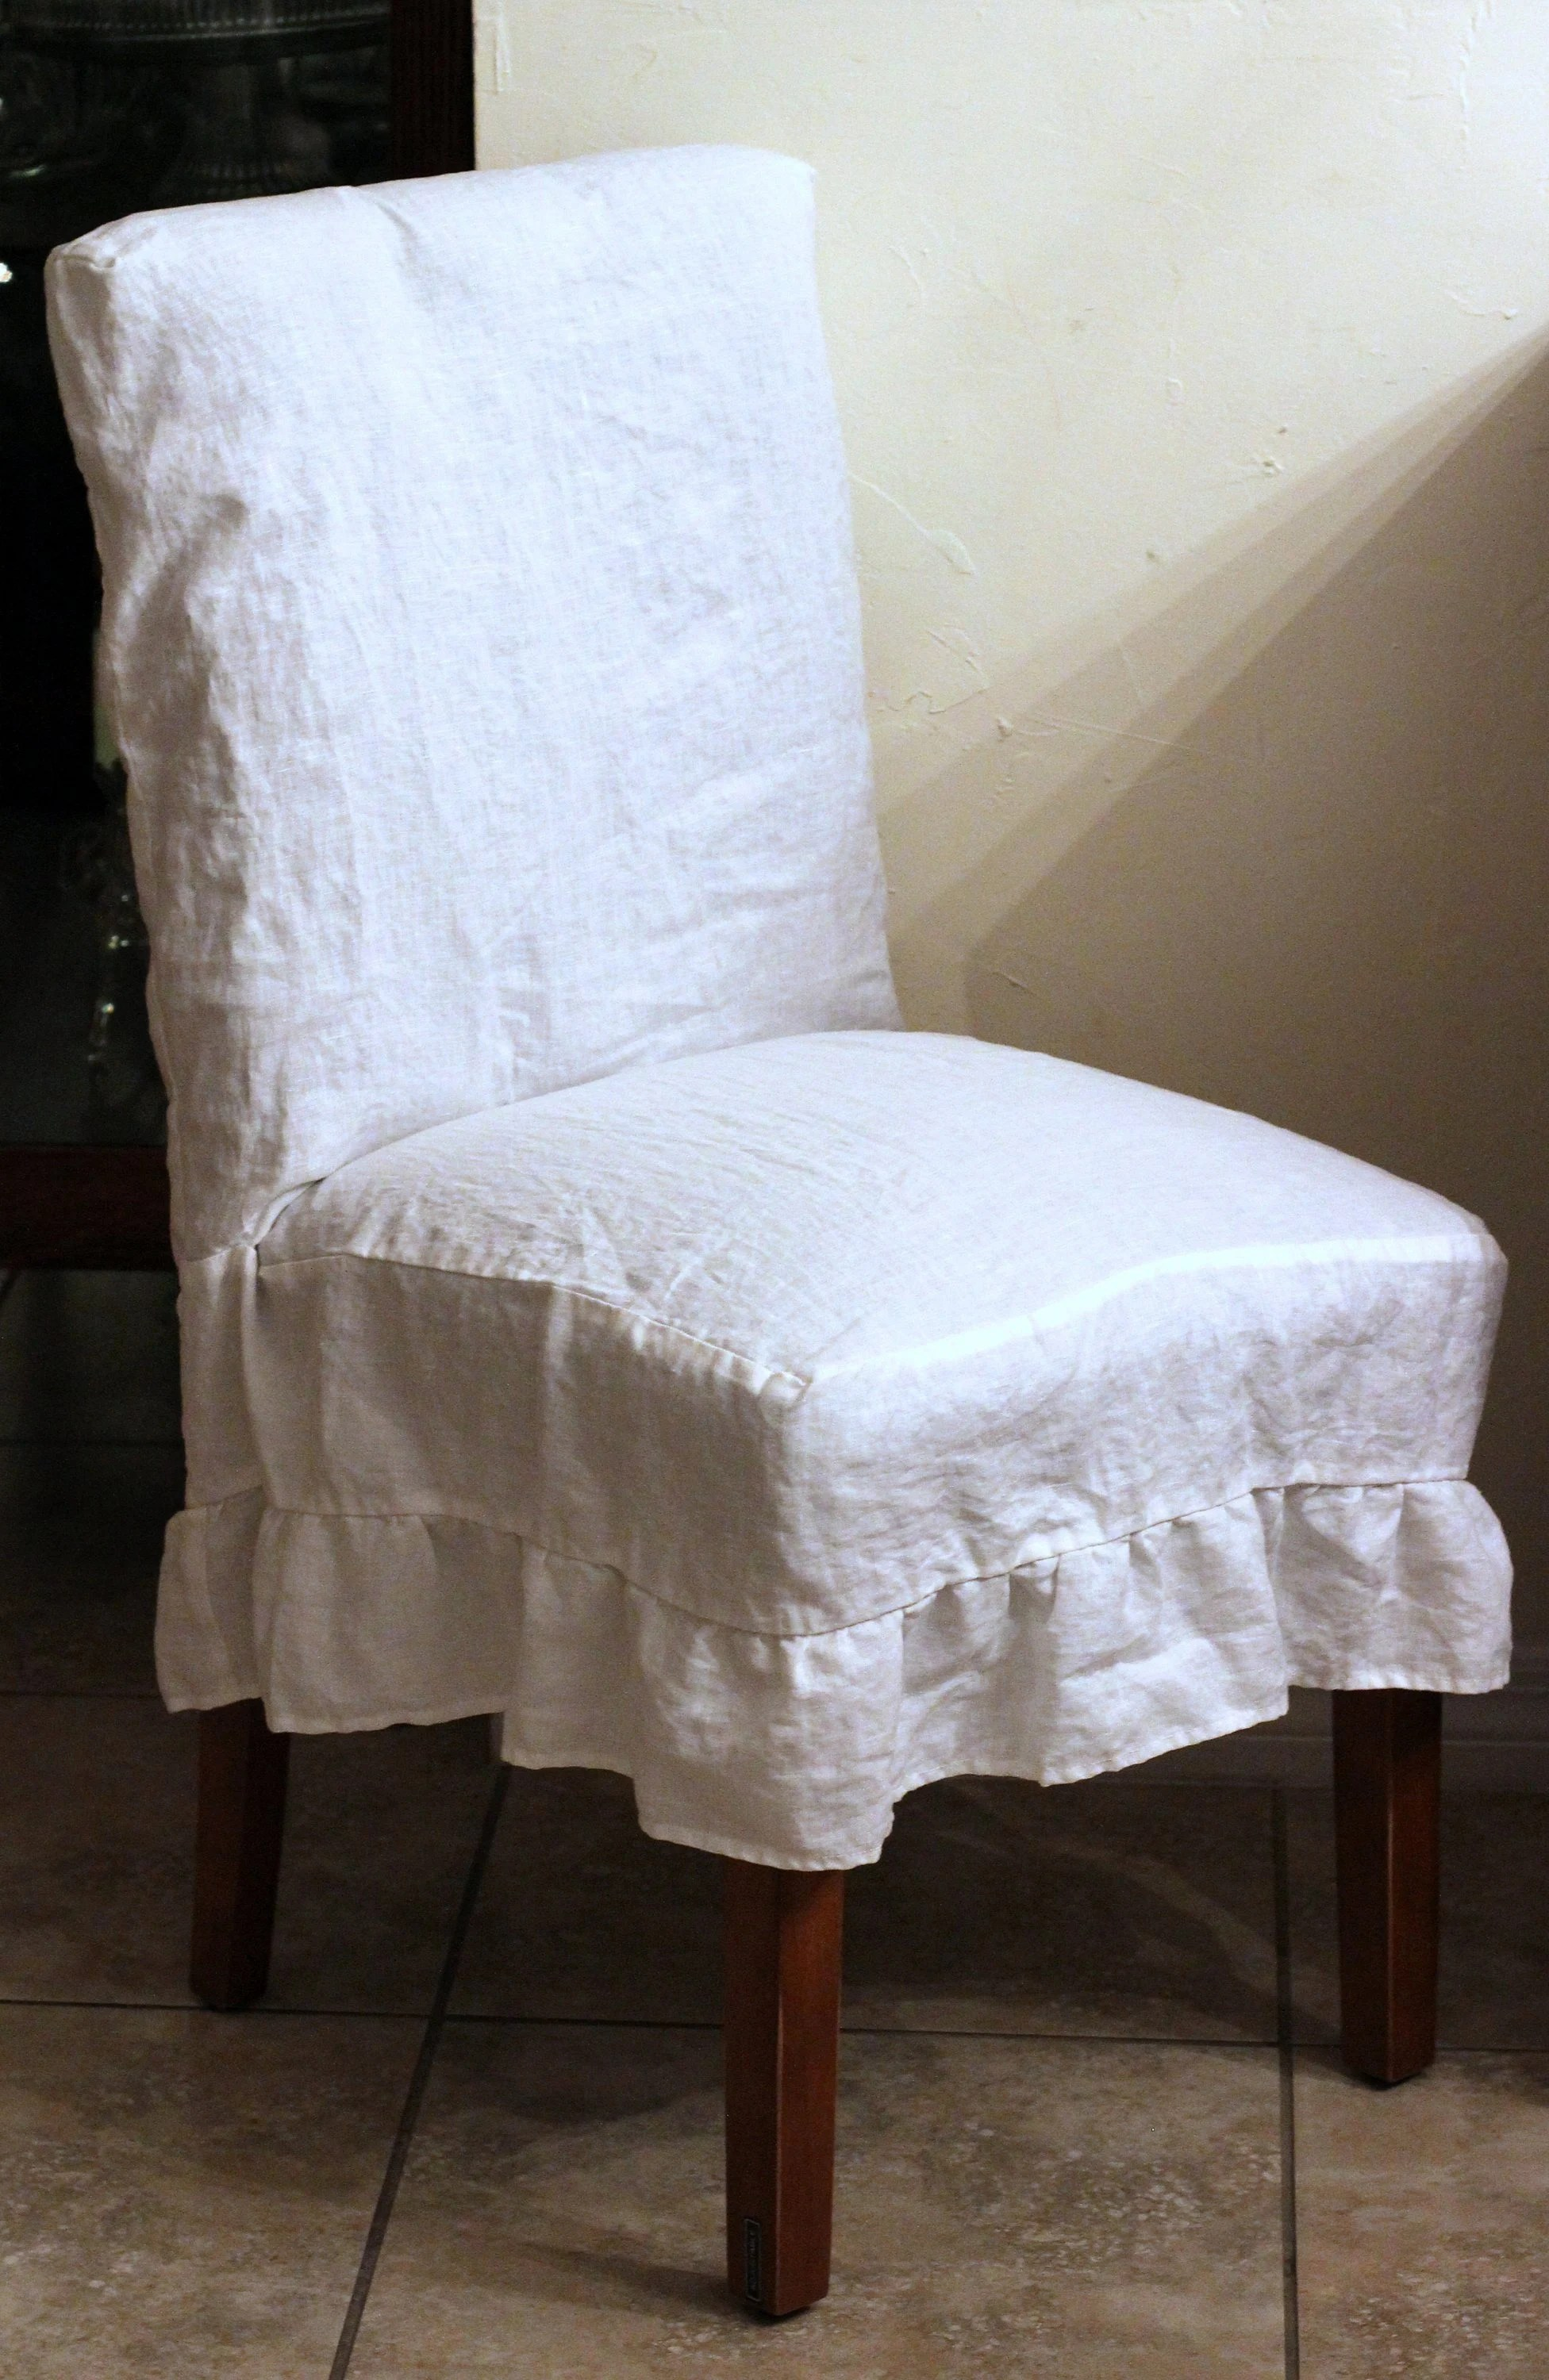 parson chairs camping chair with table slipcover etsy french linen cover ruffle in white and off